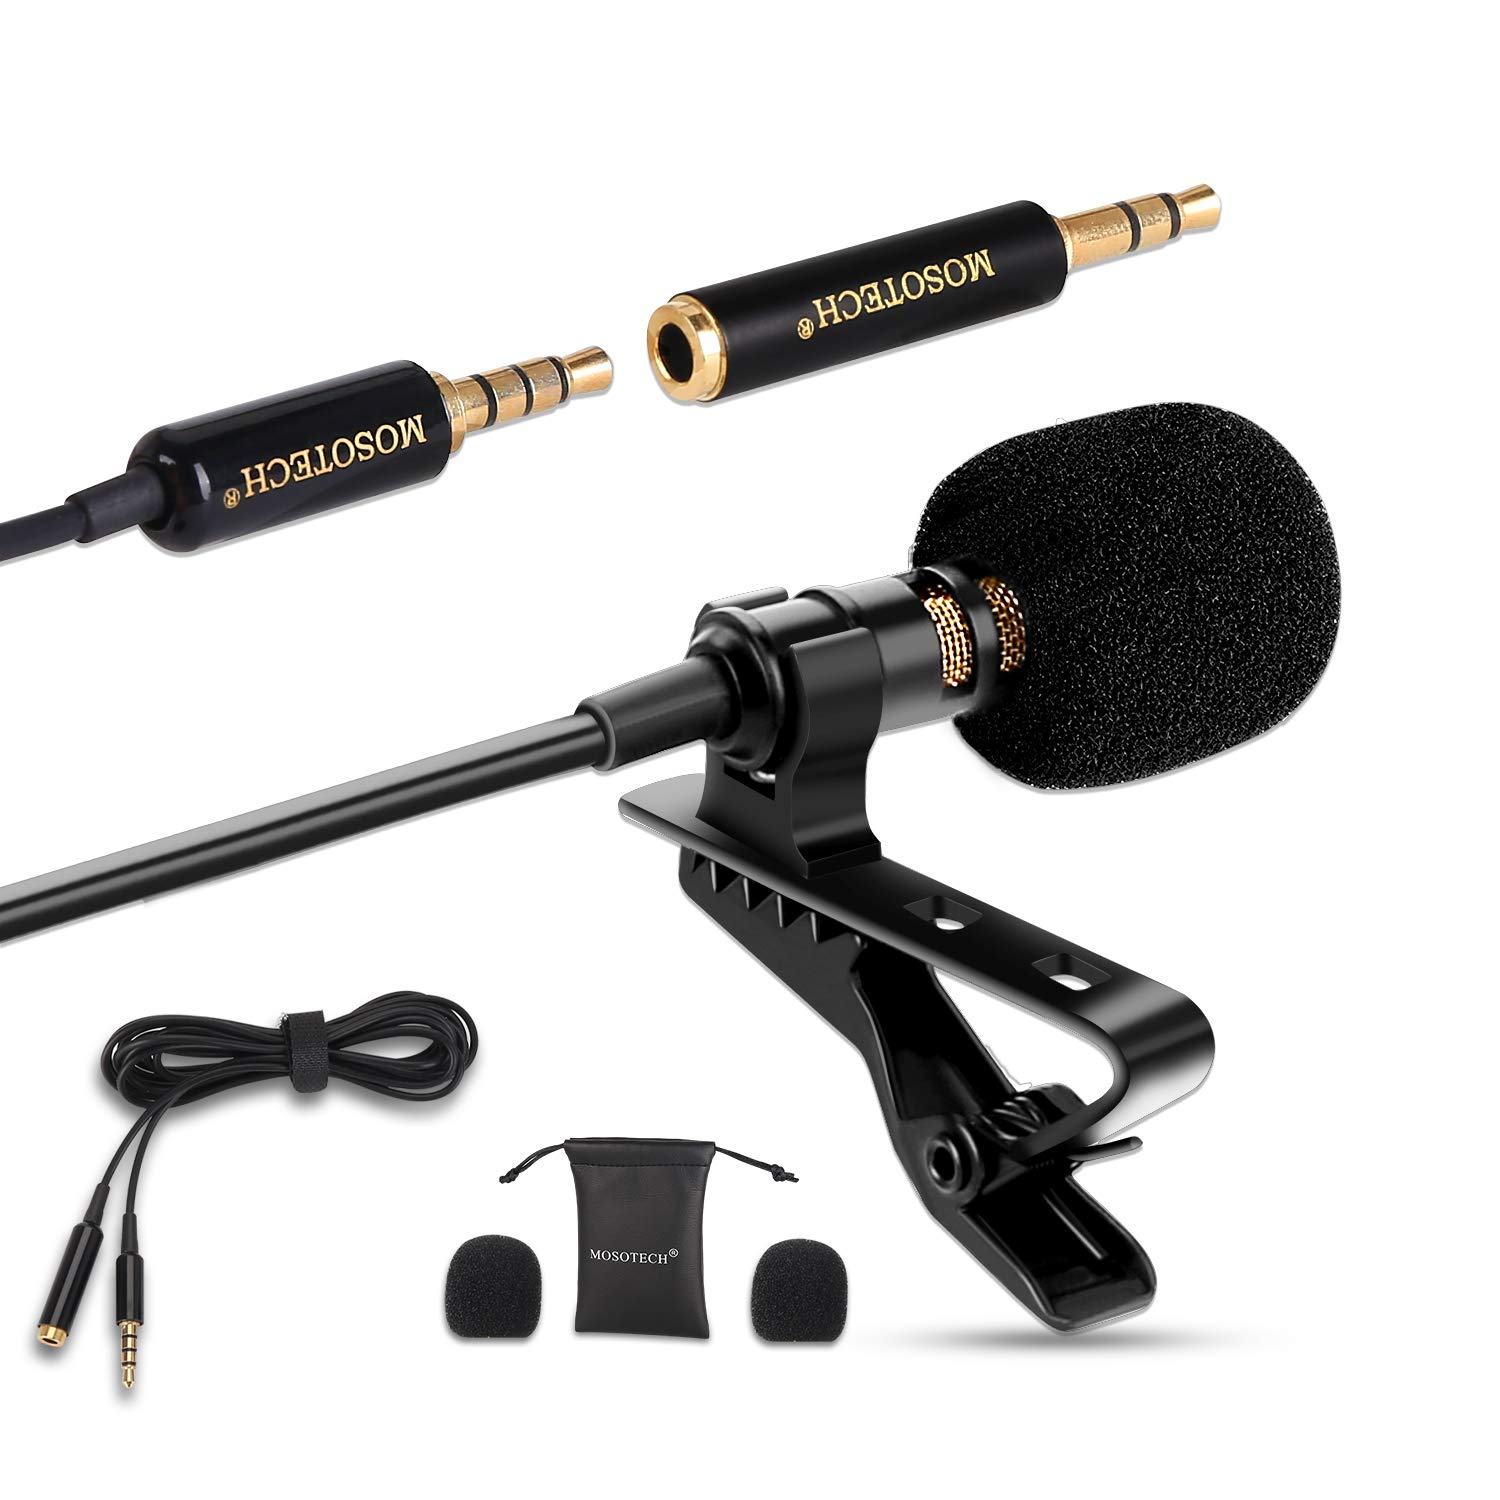 Lavalier Microphone, Omnidirectional Condenser Lavalier MIC for Recording YouTube Interview (Suitable for iPhone/Android/Windows/Camera) by MOSOTECH